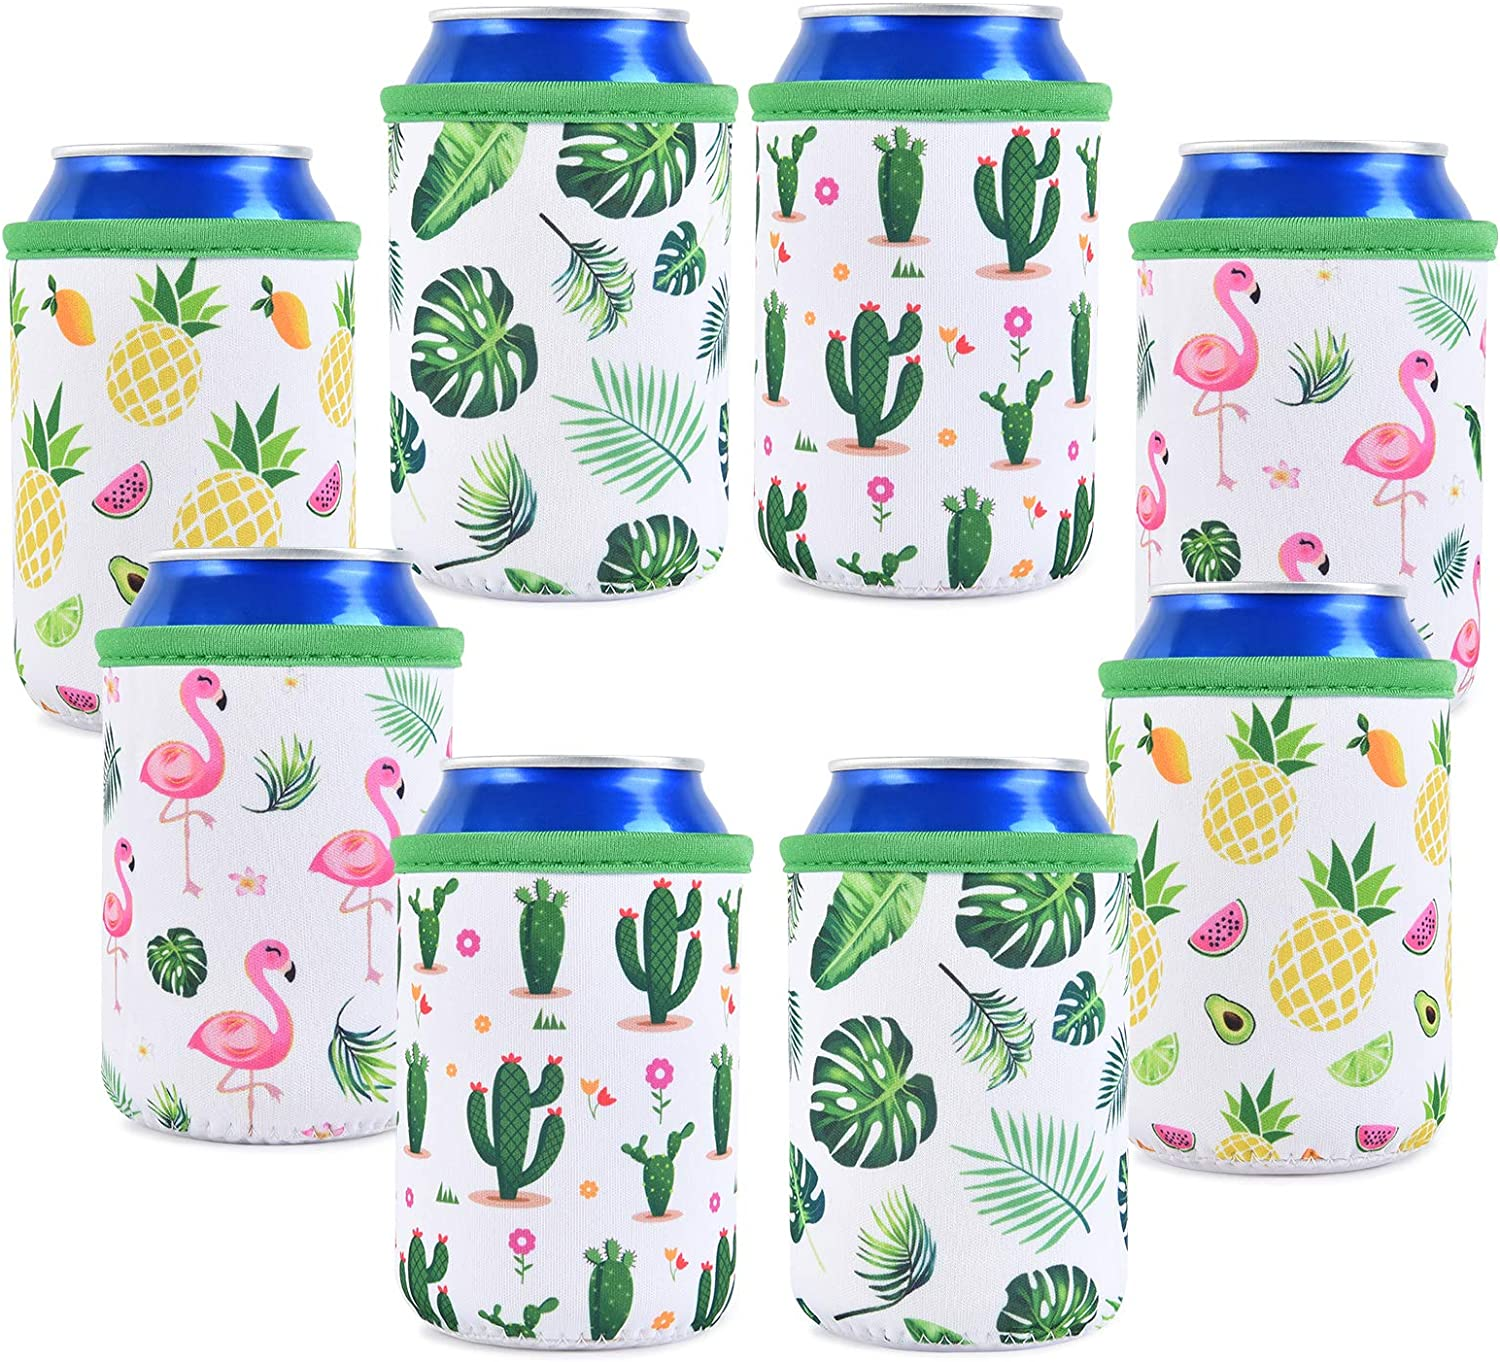 Set of 8 Neoprene Can Sleeves - Collapsible Thermocoolers Can Cooler Sleeves Tropical Summer Soda Beer Caddies for Weddings Bridal Shower Birthday Beach Bachelorette Parties: Home & Kitchen